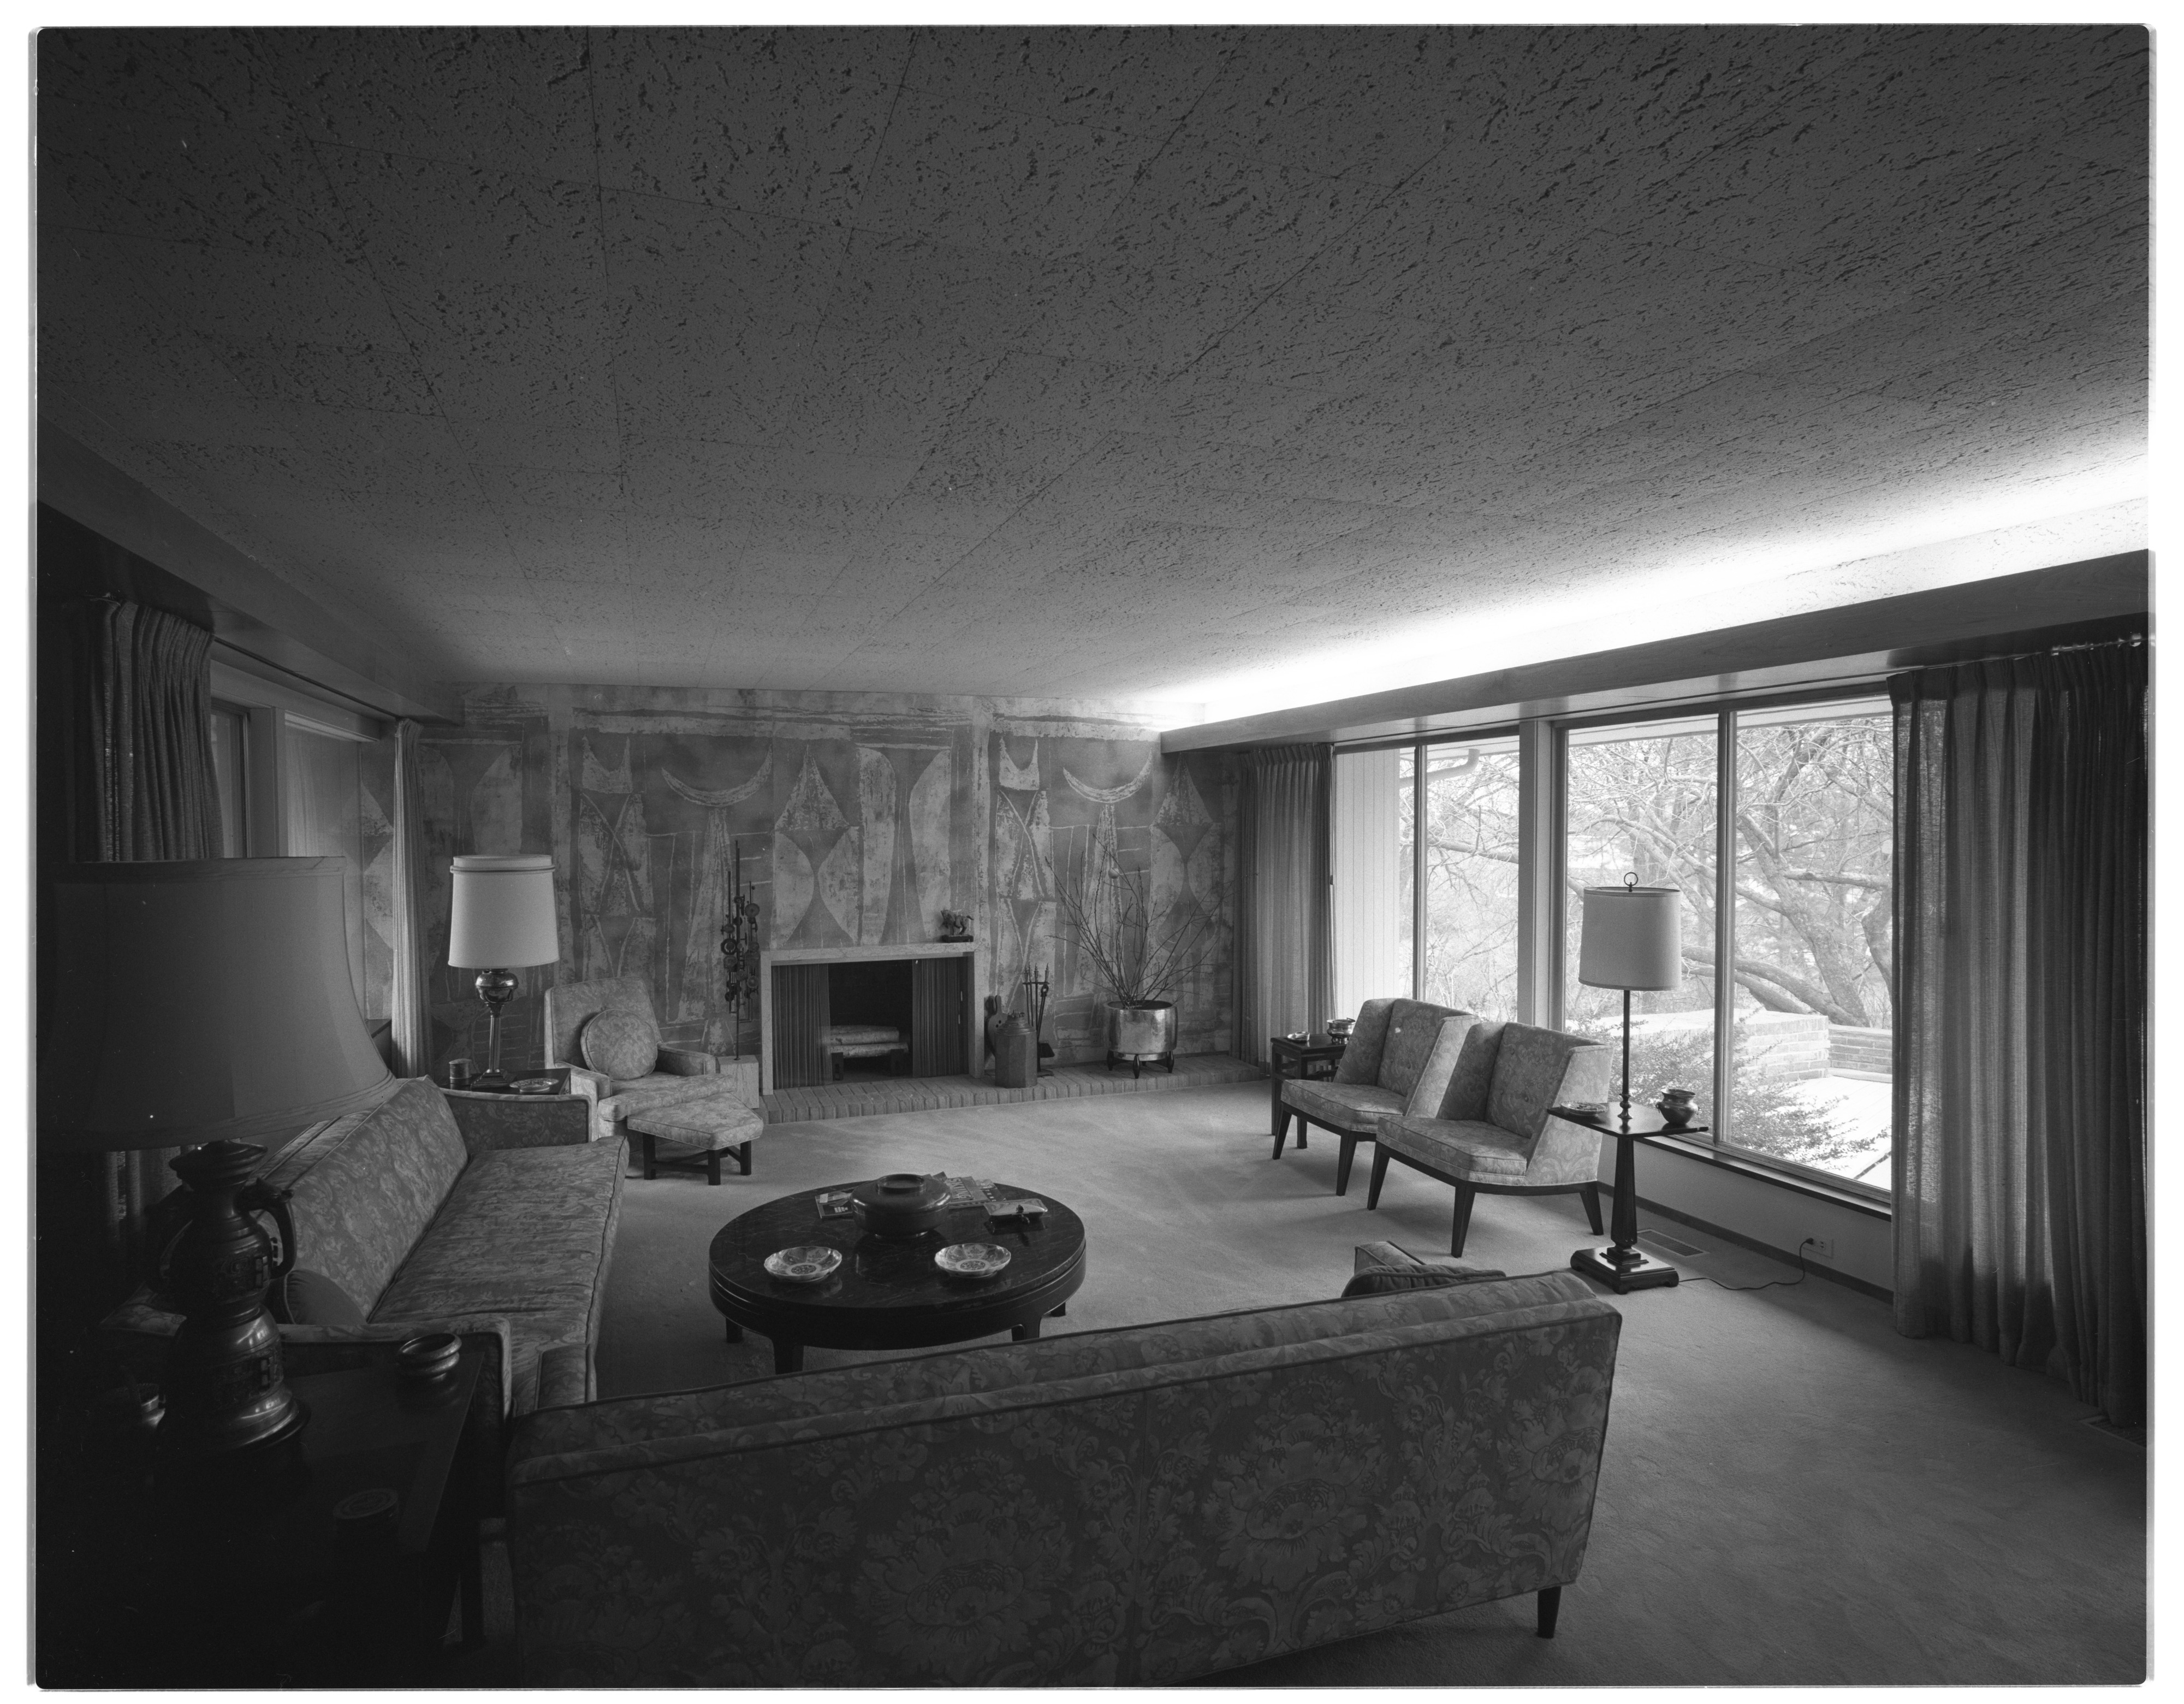 Mural Surrounds Fireplace of Mrs. Henry Wege Home, April 1969 image